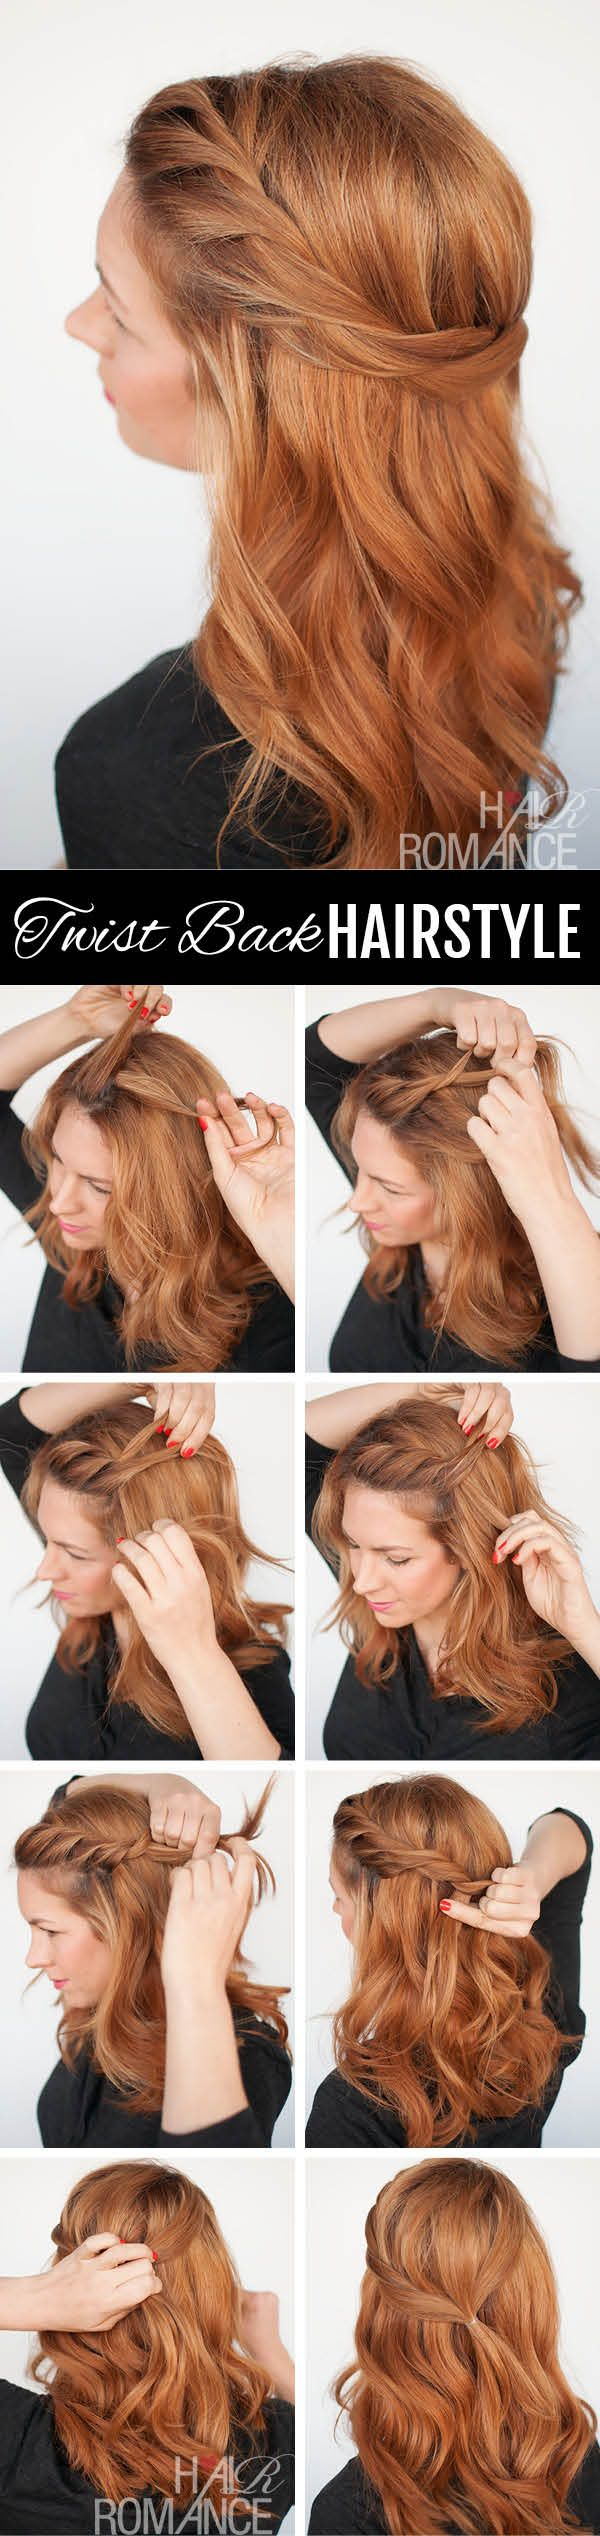 Easy halfup hairstyle coiffures pinterest easy hairstyles